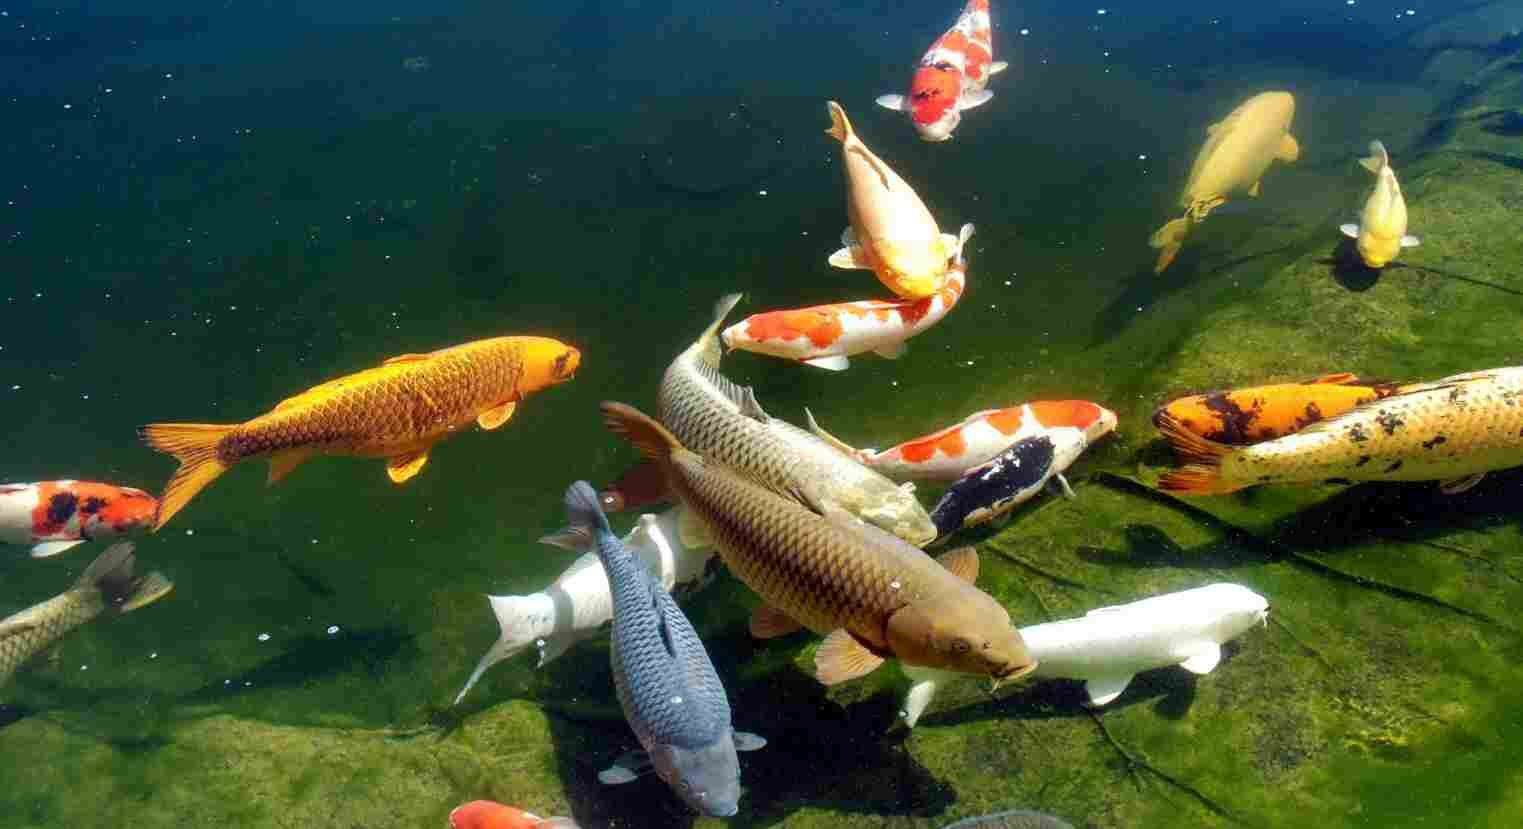 Koi Fish Pond Wallpaper Hd Koi Fish In The Pond Koi